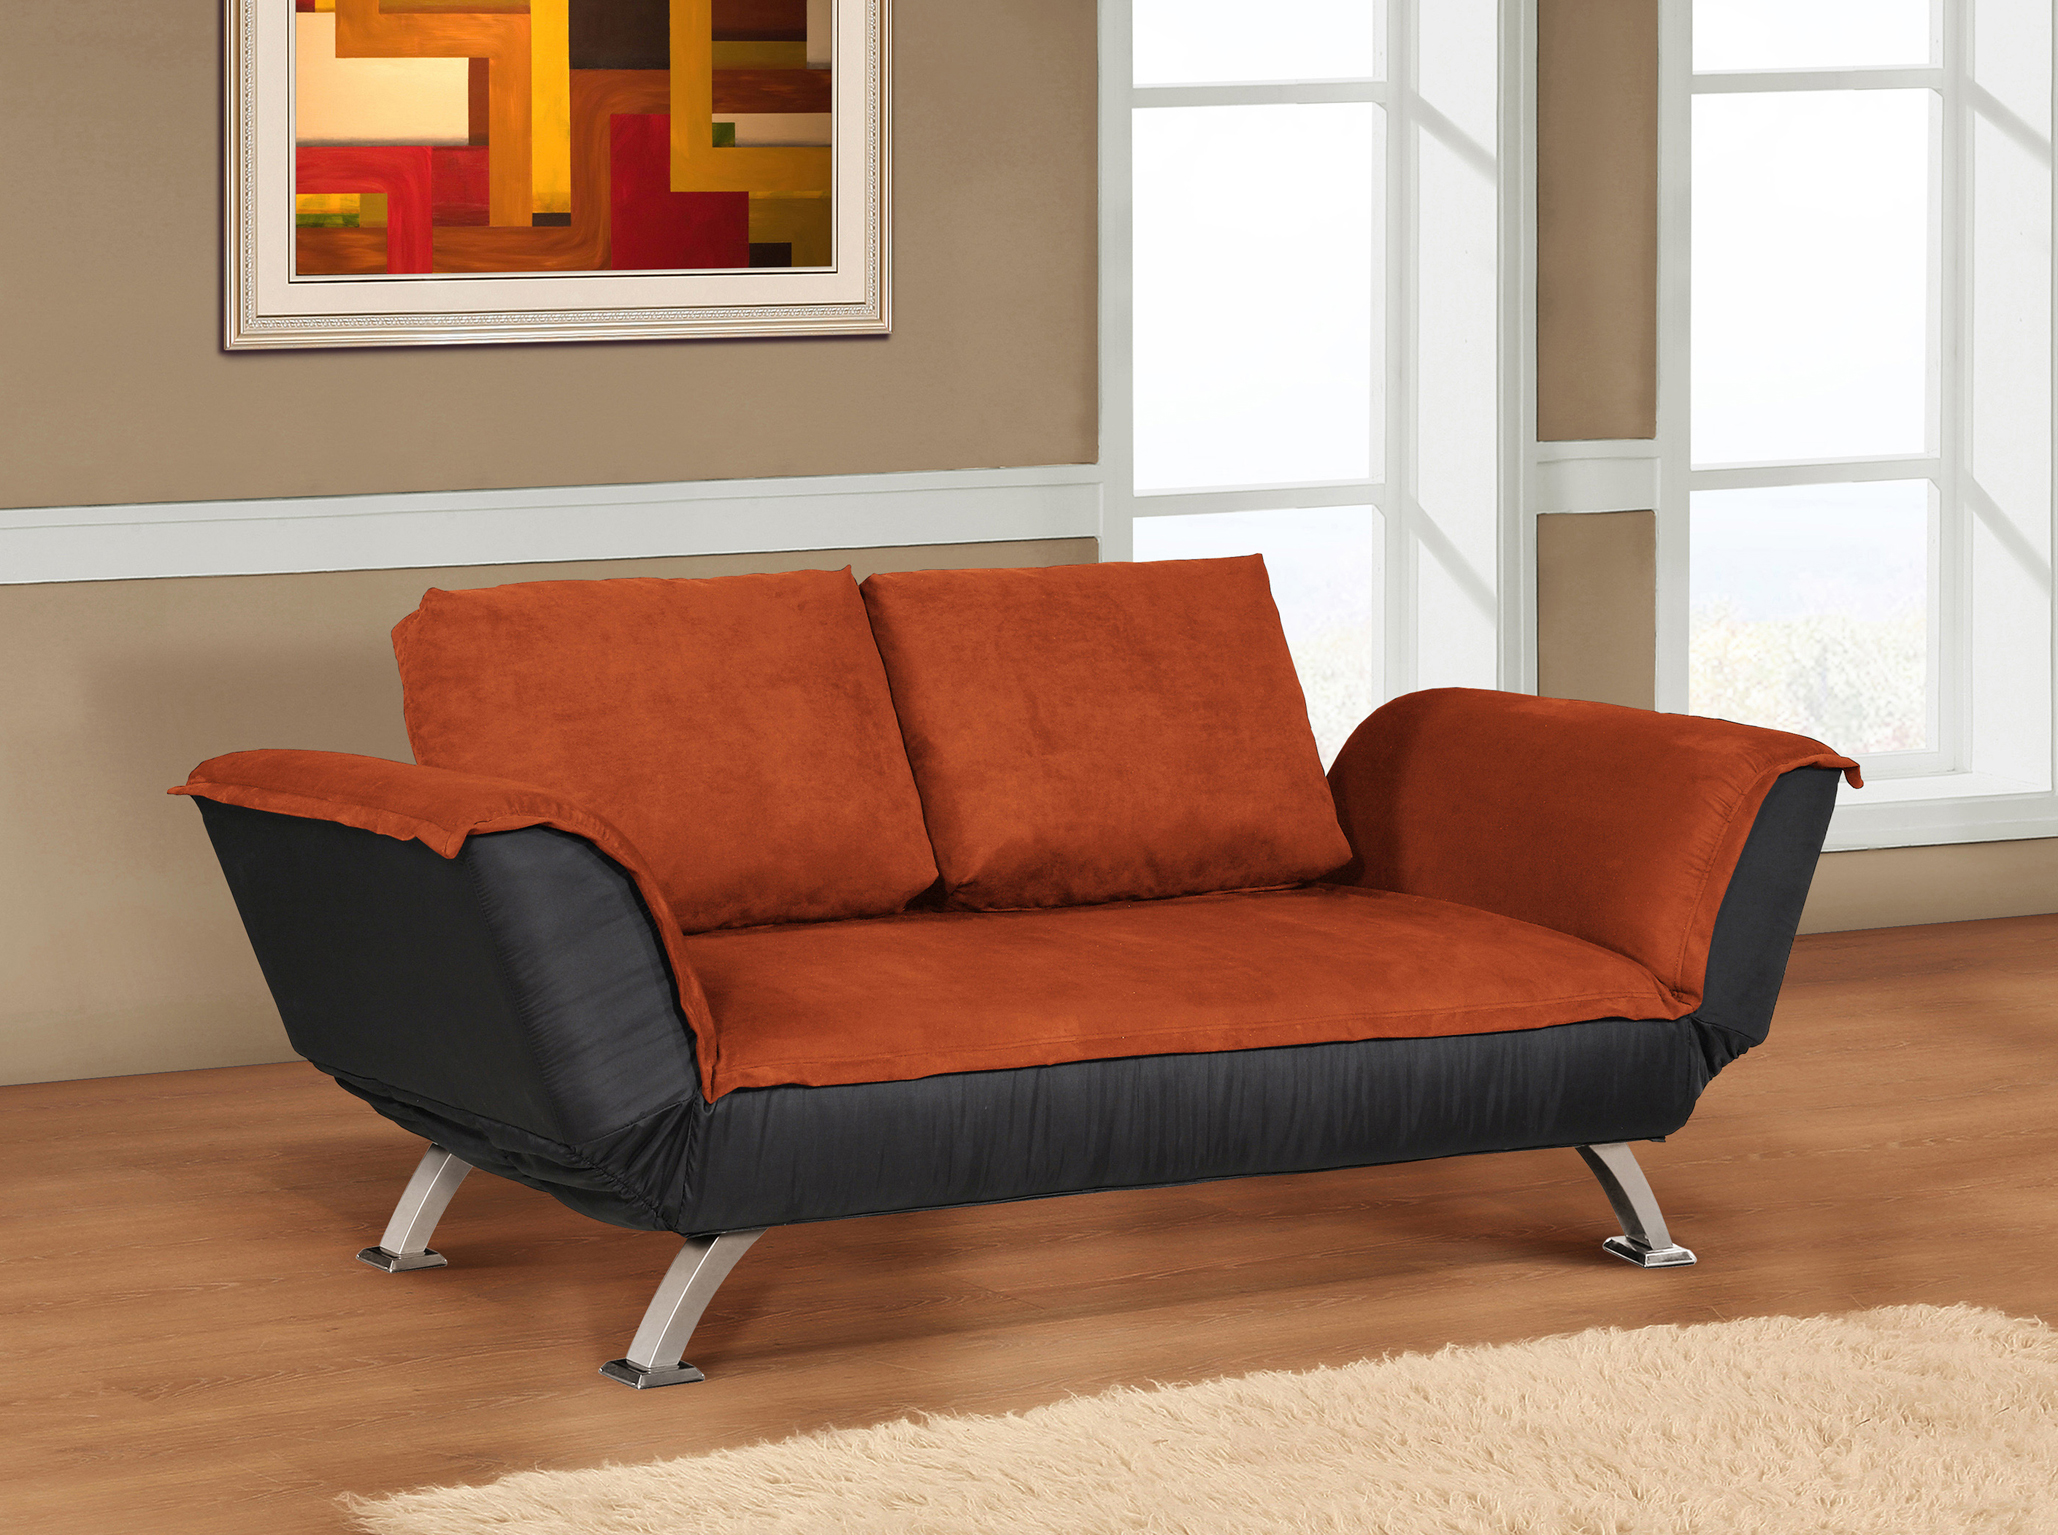 Convertible Loveseat Sofa Bed With Chaise Couch Sofa Ideas Interior Design